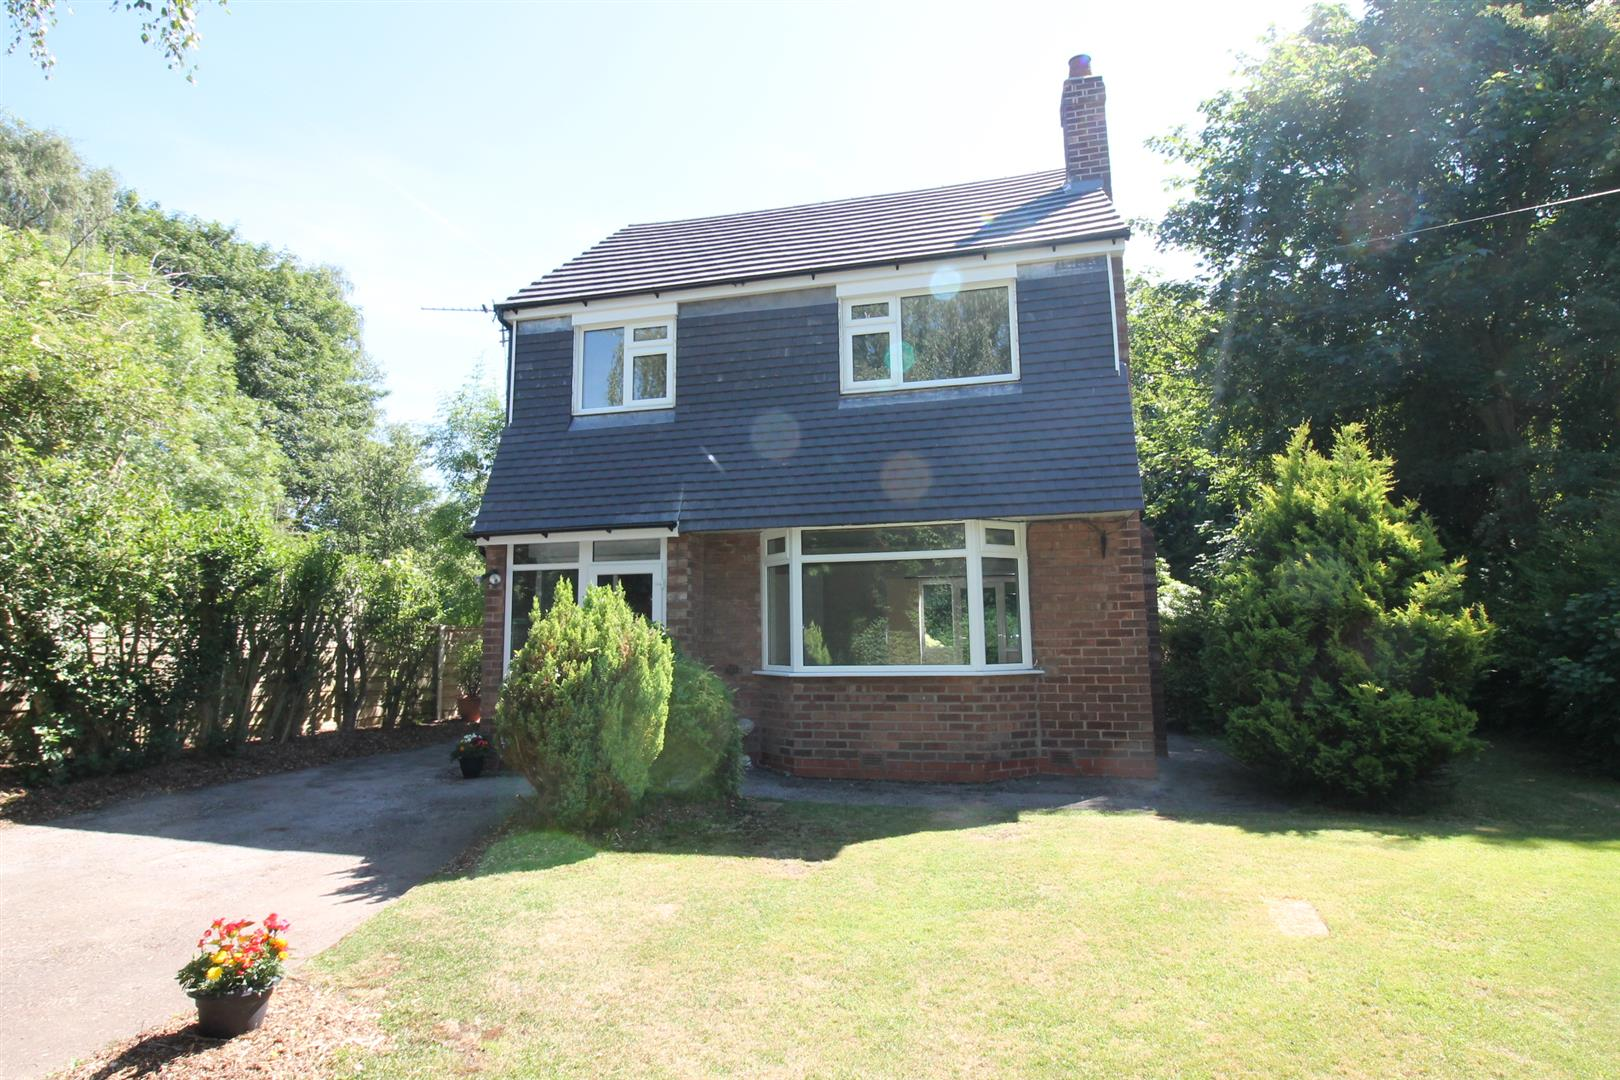 3 Bedroom House - Detached To Let